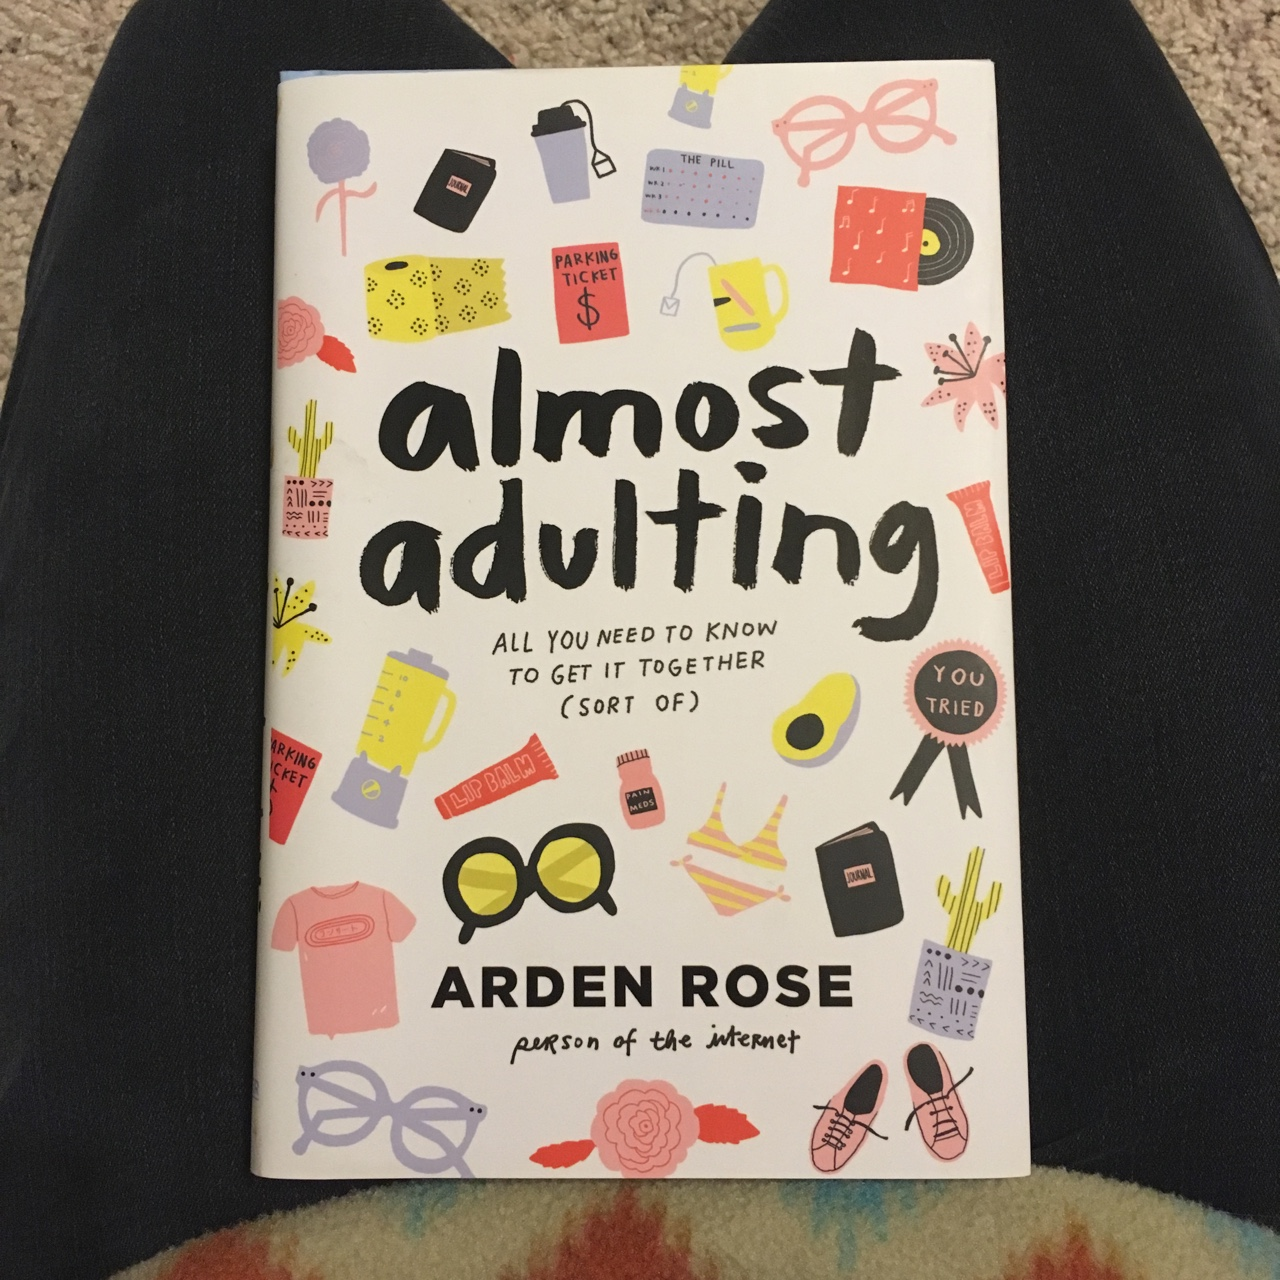 71b9e46235f Almost Adulting by youtuber Arden Rose - Depop